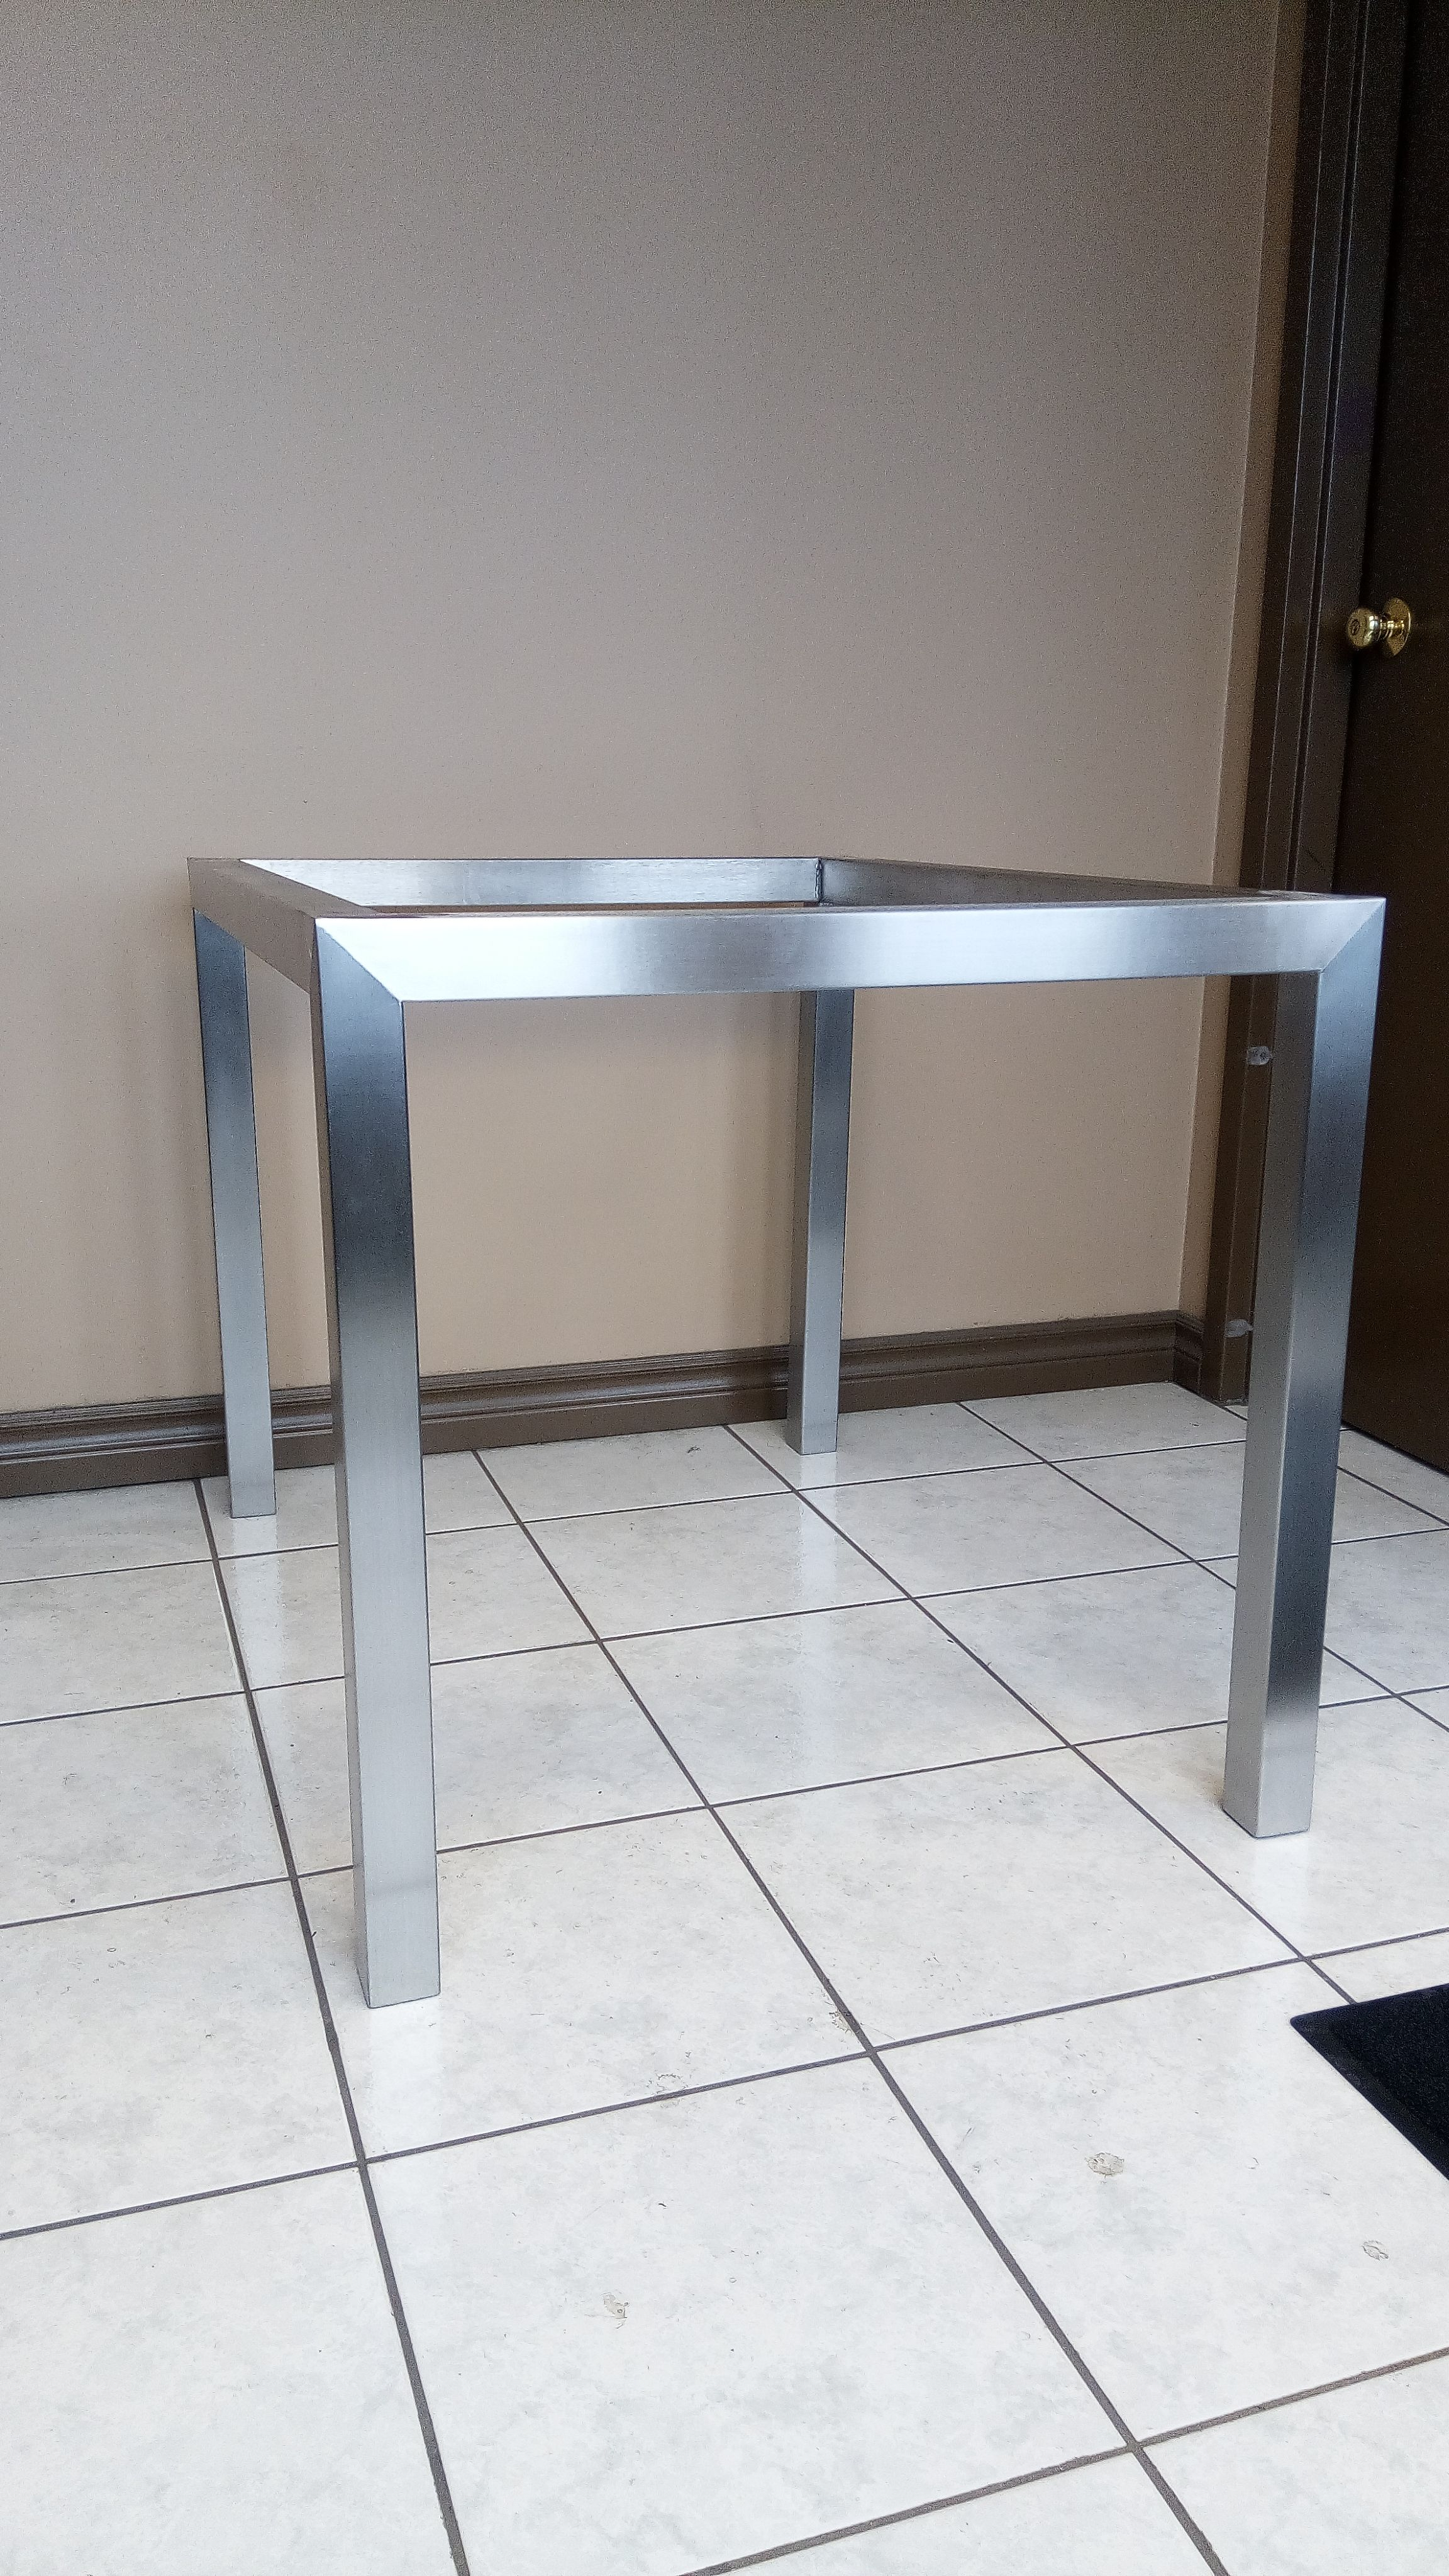 Custom stainless steel metal table frame Finished in a brushed